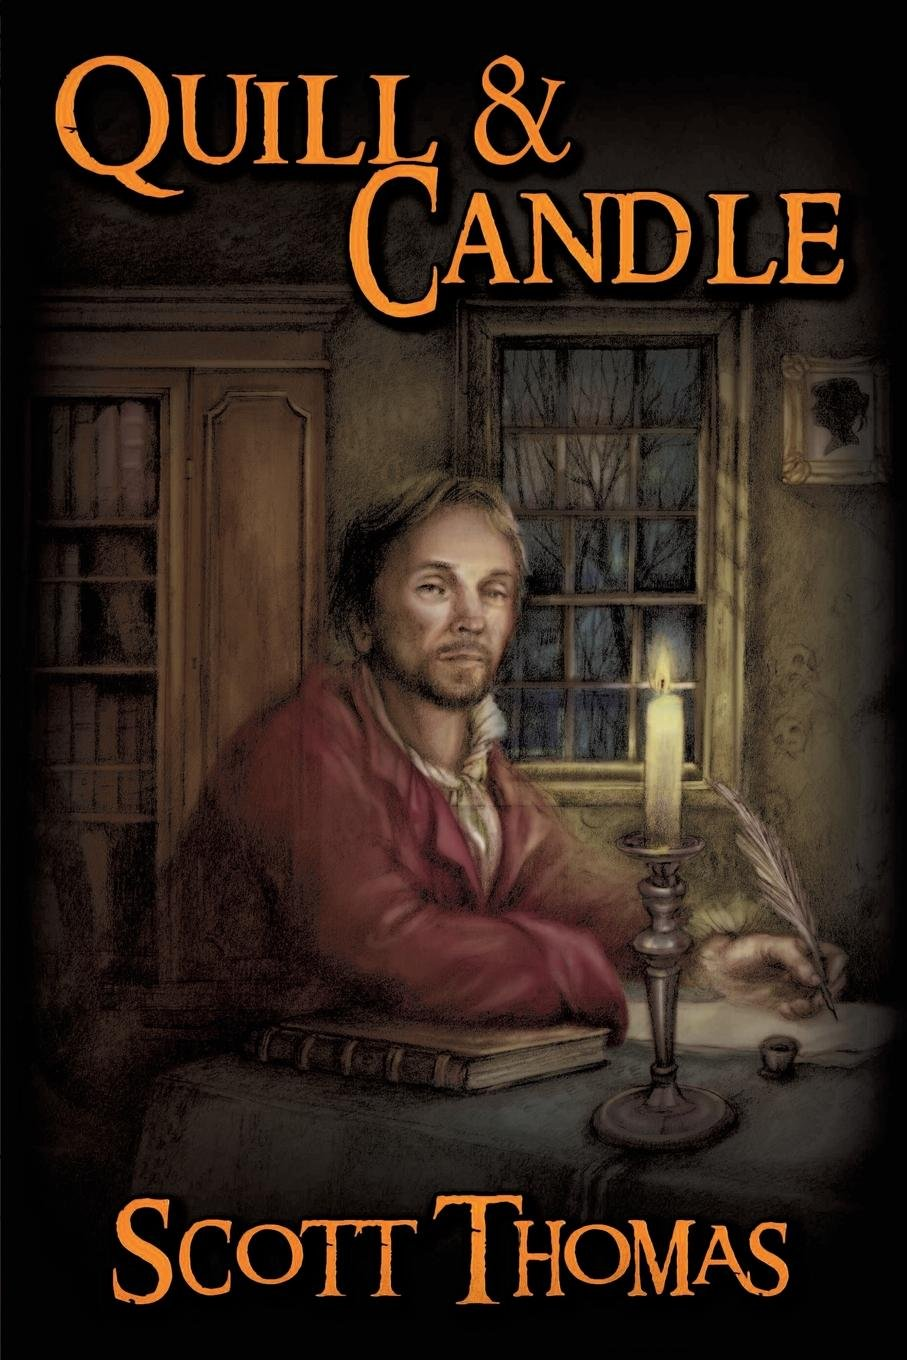 Quill & Candle: Scott Thomas, Erin Wells: 9781626410916: Amazon.com: Books